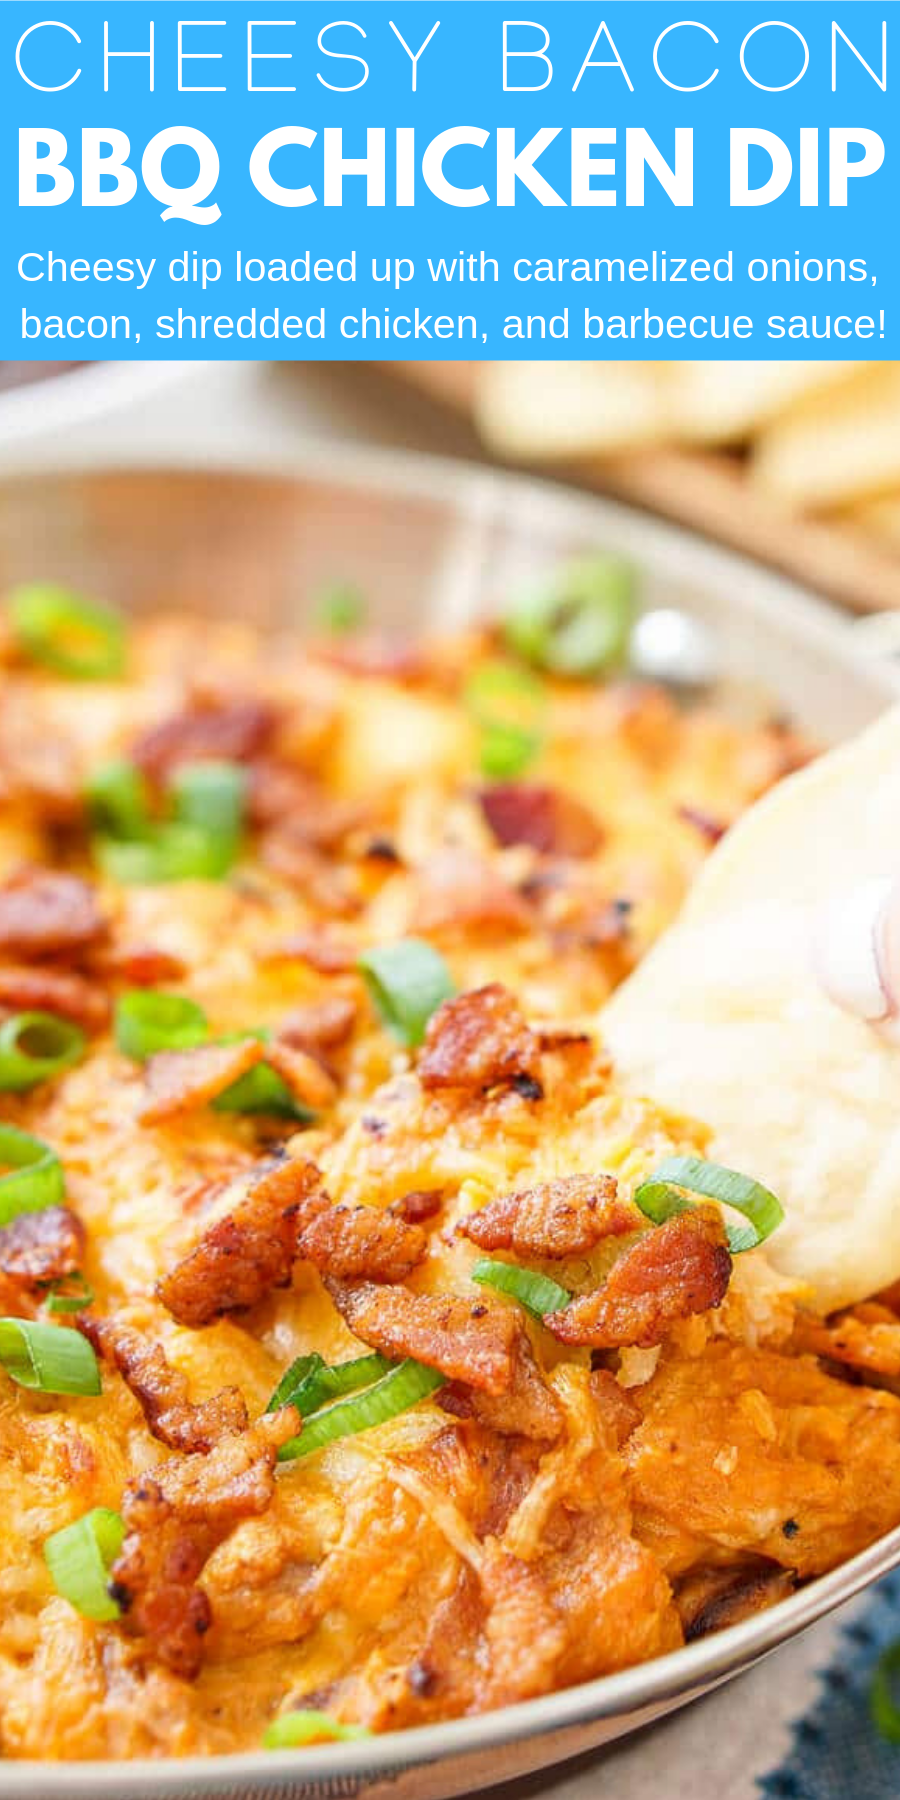 This Cheesy Bacon BBQ Chicken Dip will be the winning dish at your next game day party! Cheesy goodness loaded up with caramelized onions, crunchy bacon, shredded chicken, and tangy barbecue sauce! Only 10 minutes of prep!